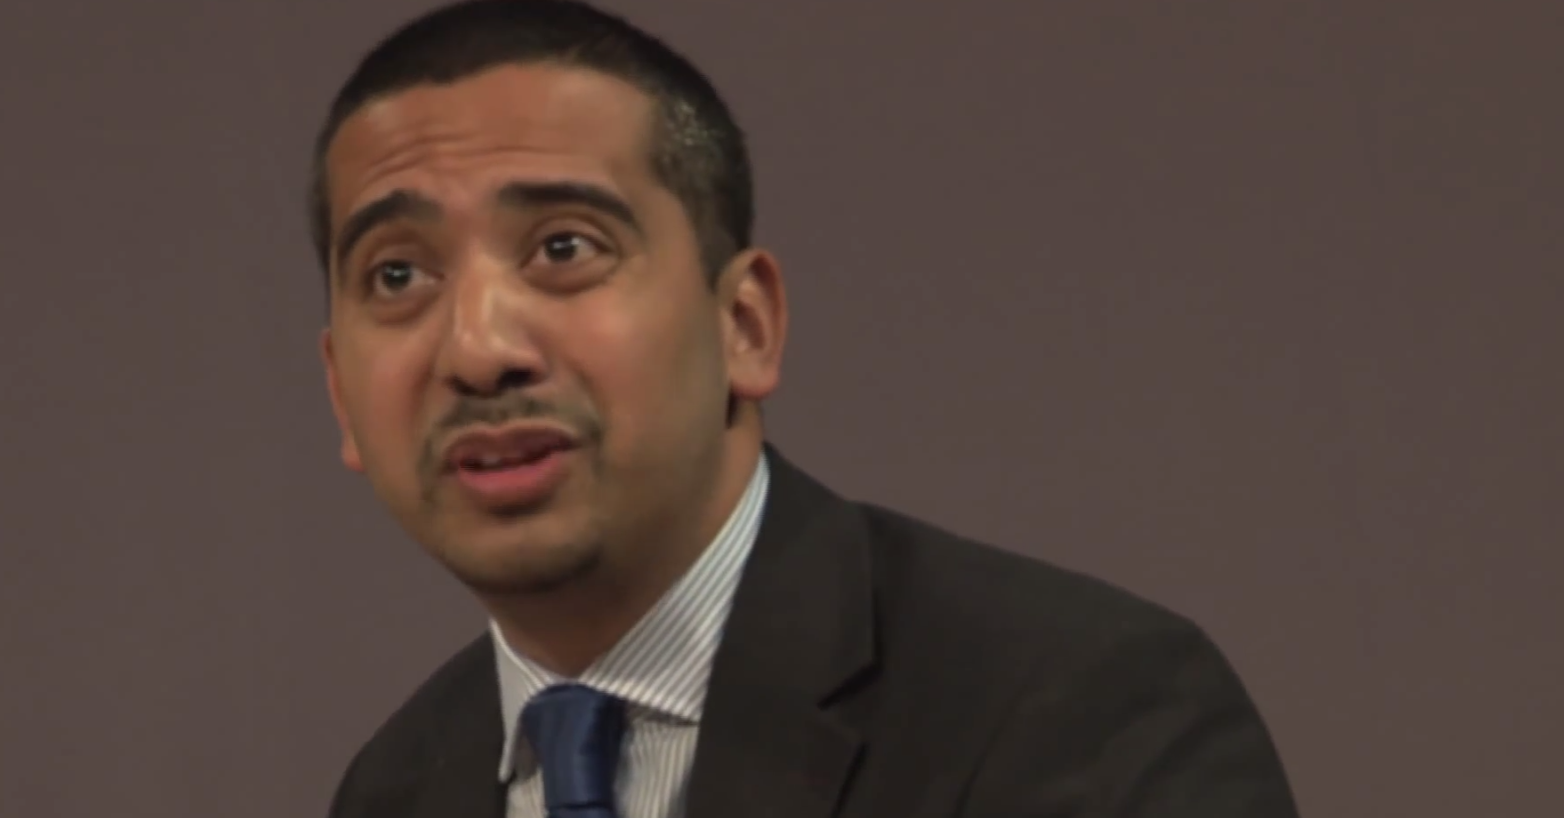 WATCH: Al Jazeera/HuffPo's Mehdi Hasan Says Breitbart Makes Fox News Look like the BBC